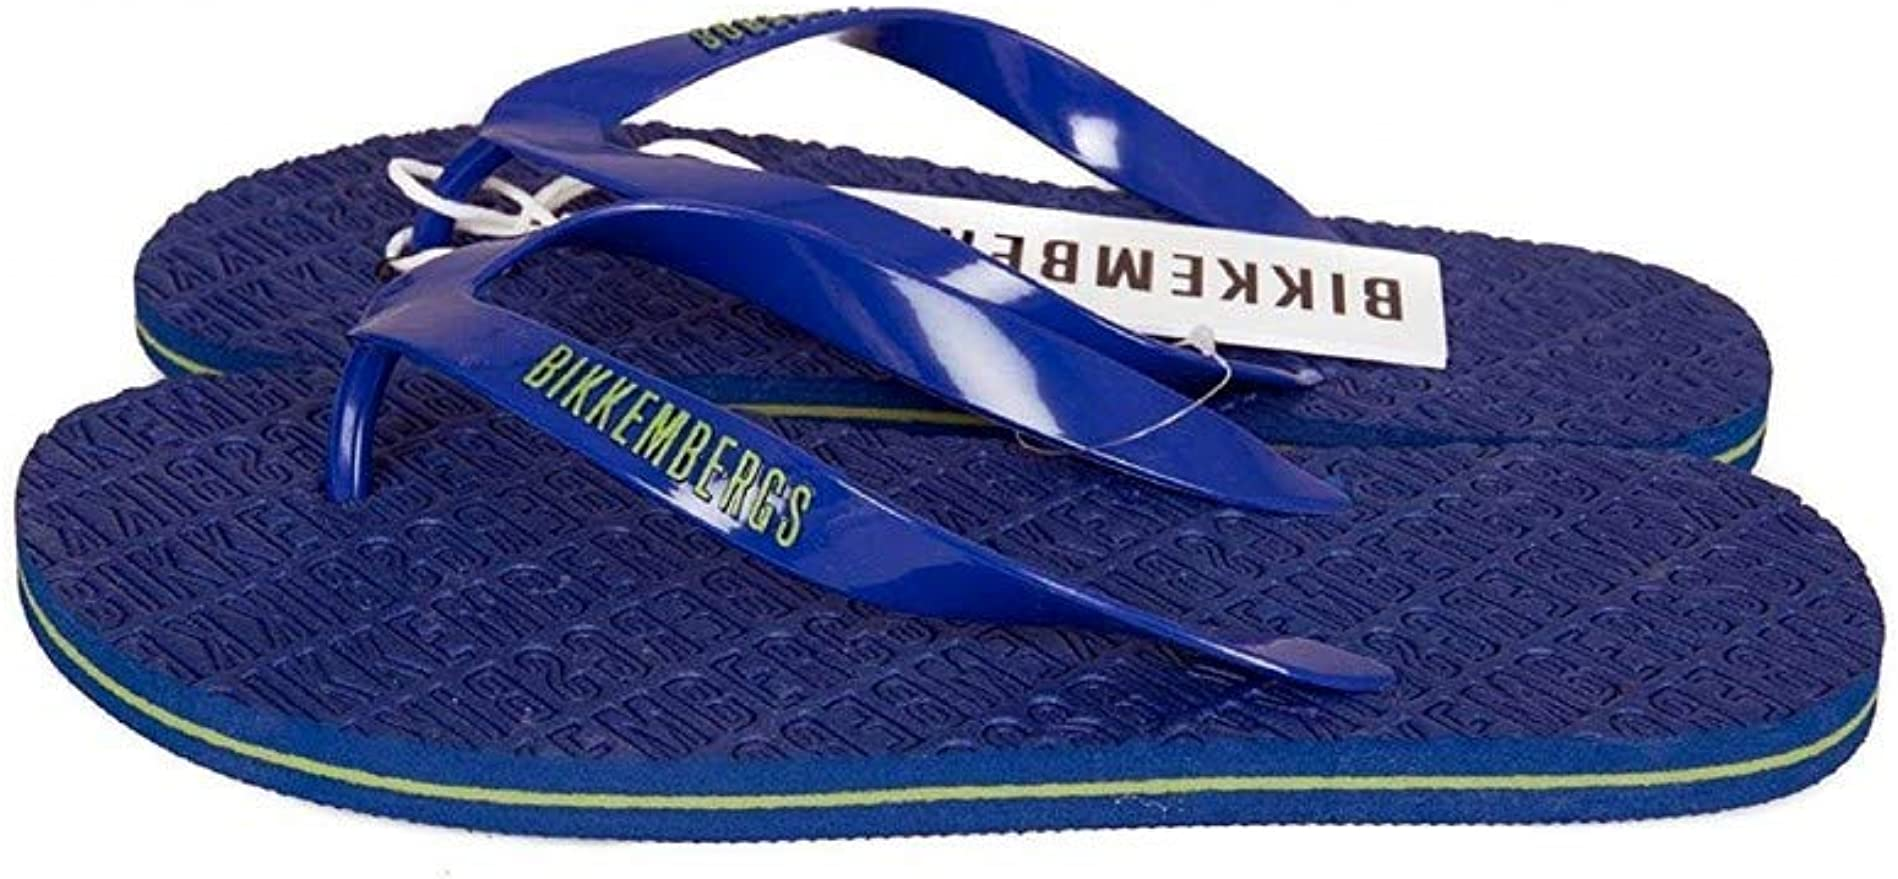 Tongs pour hommes ou BIKKEMBERGS piscine Article B6A8024